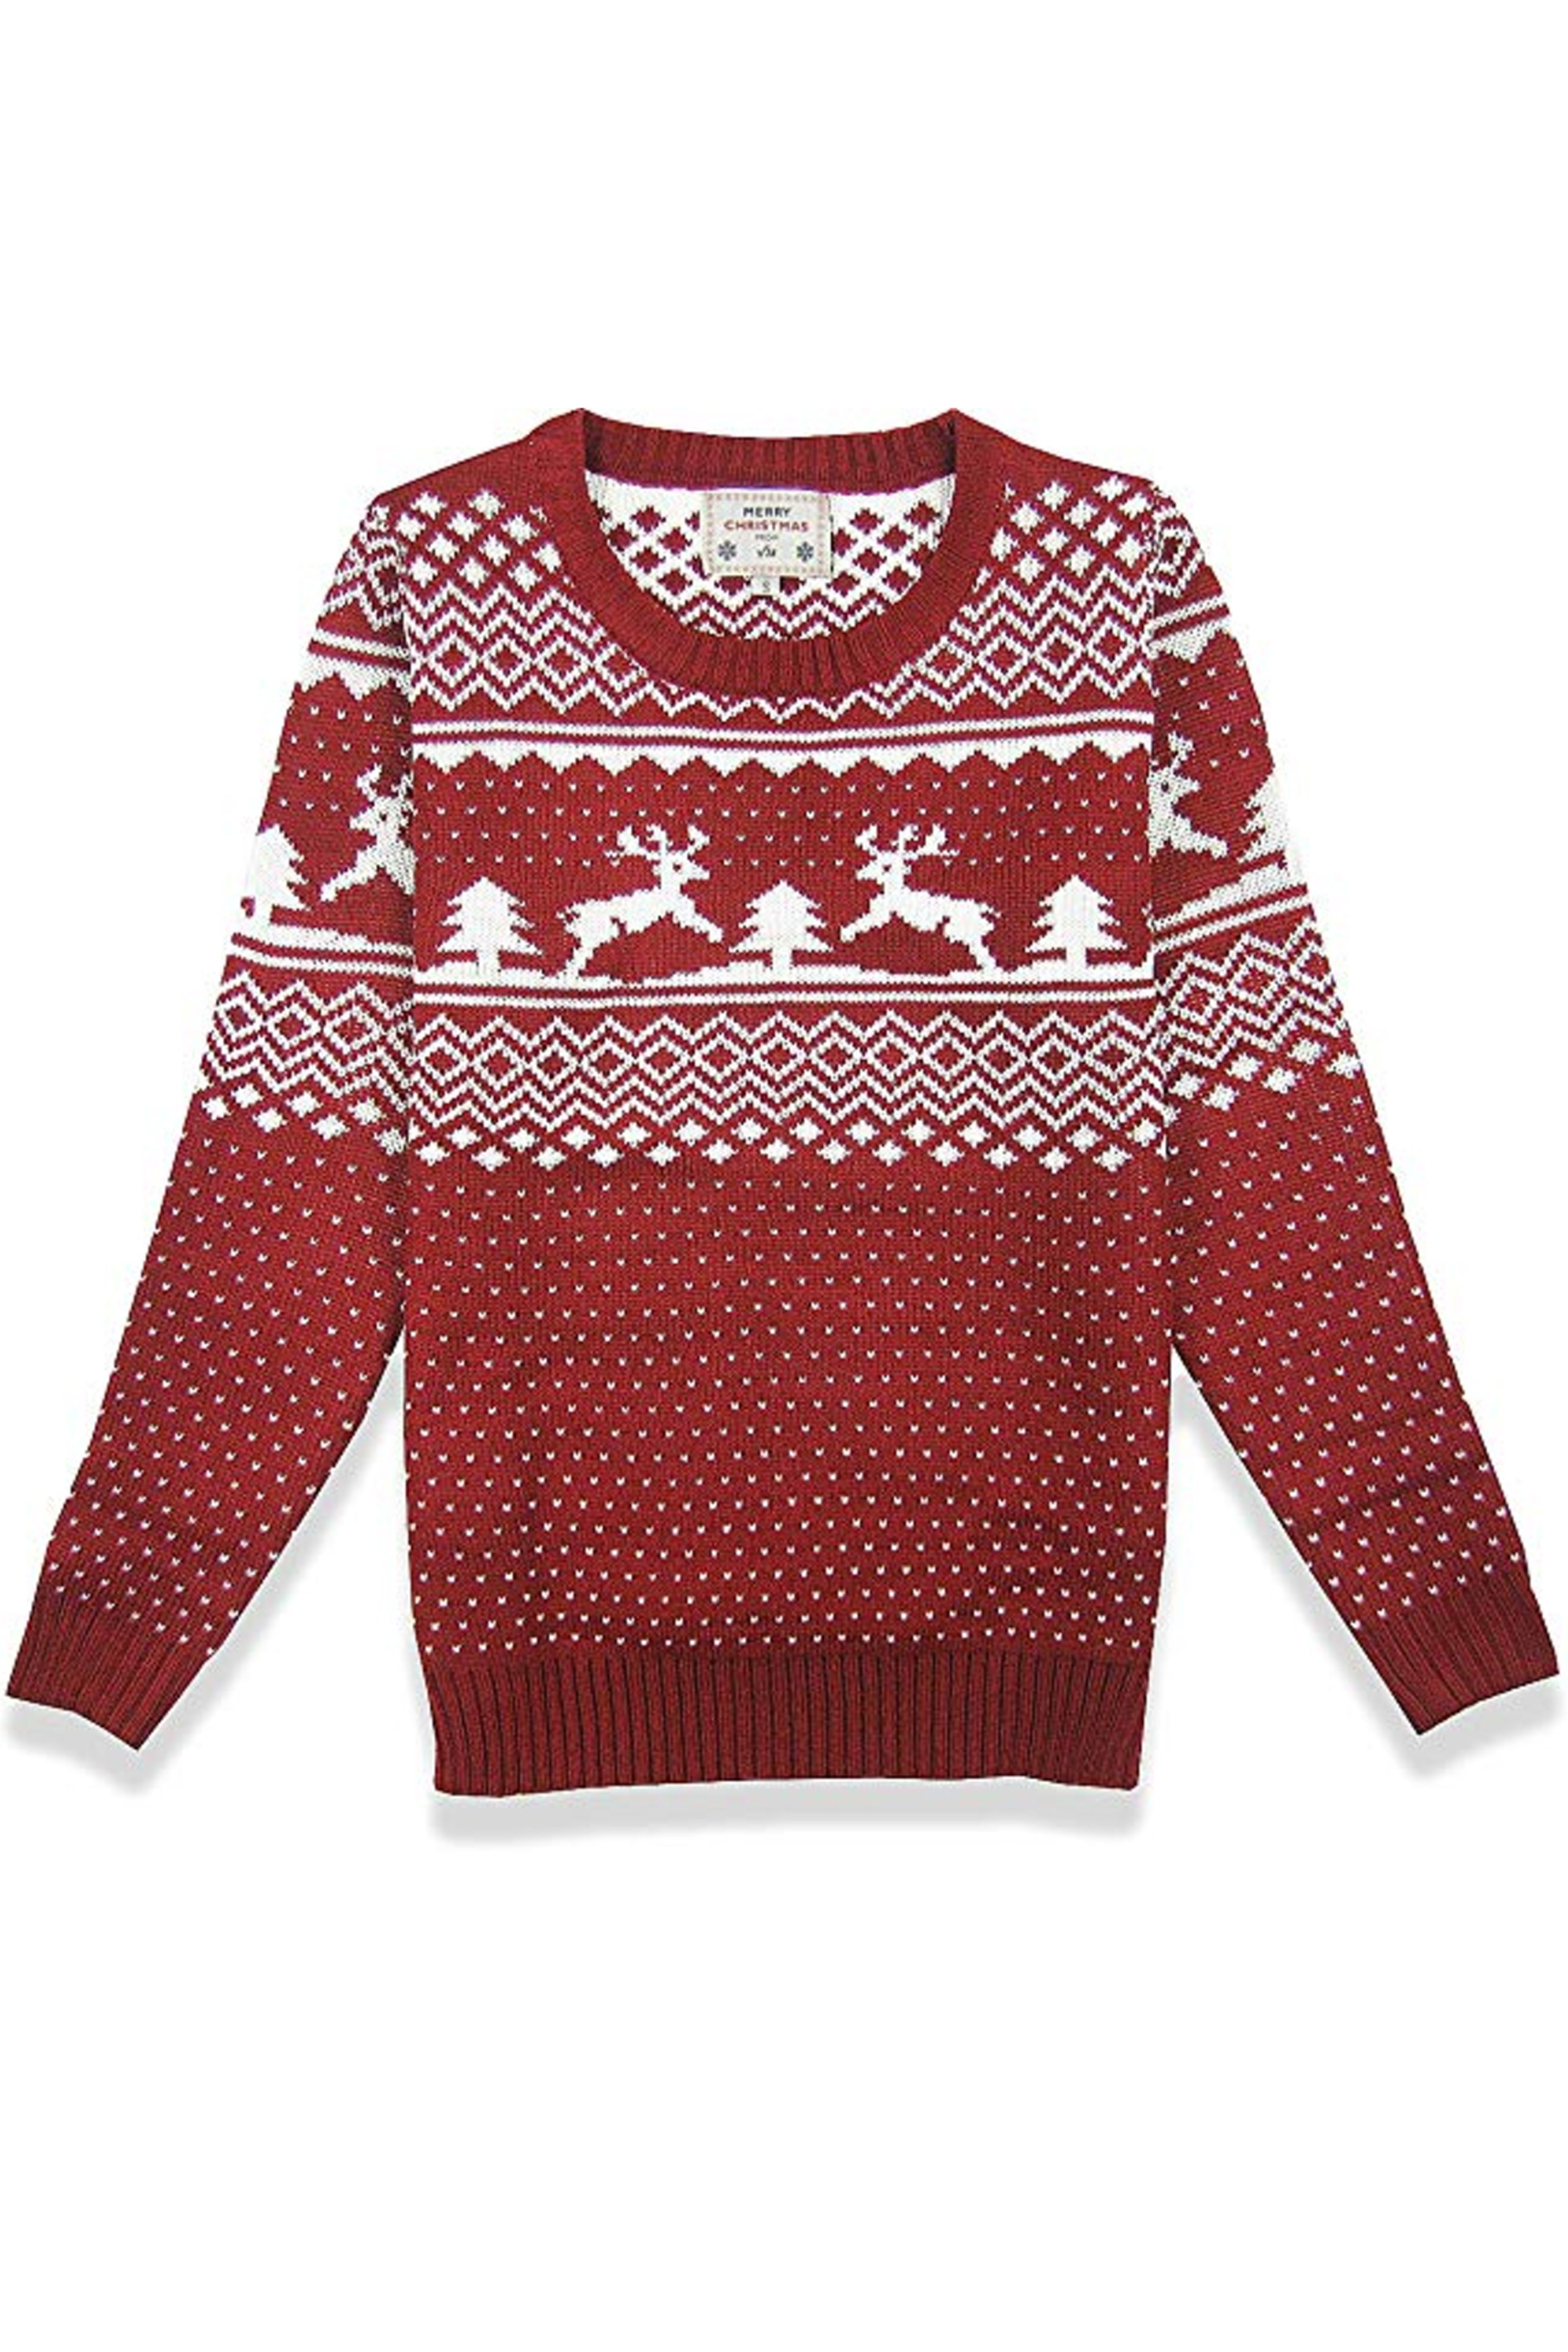 fbf3e1f7a 30+ Prettiest Christmas Sweaters - Cute and Stylish Holiday Sweaters